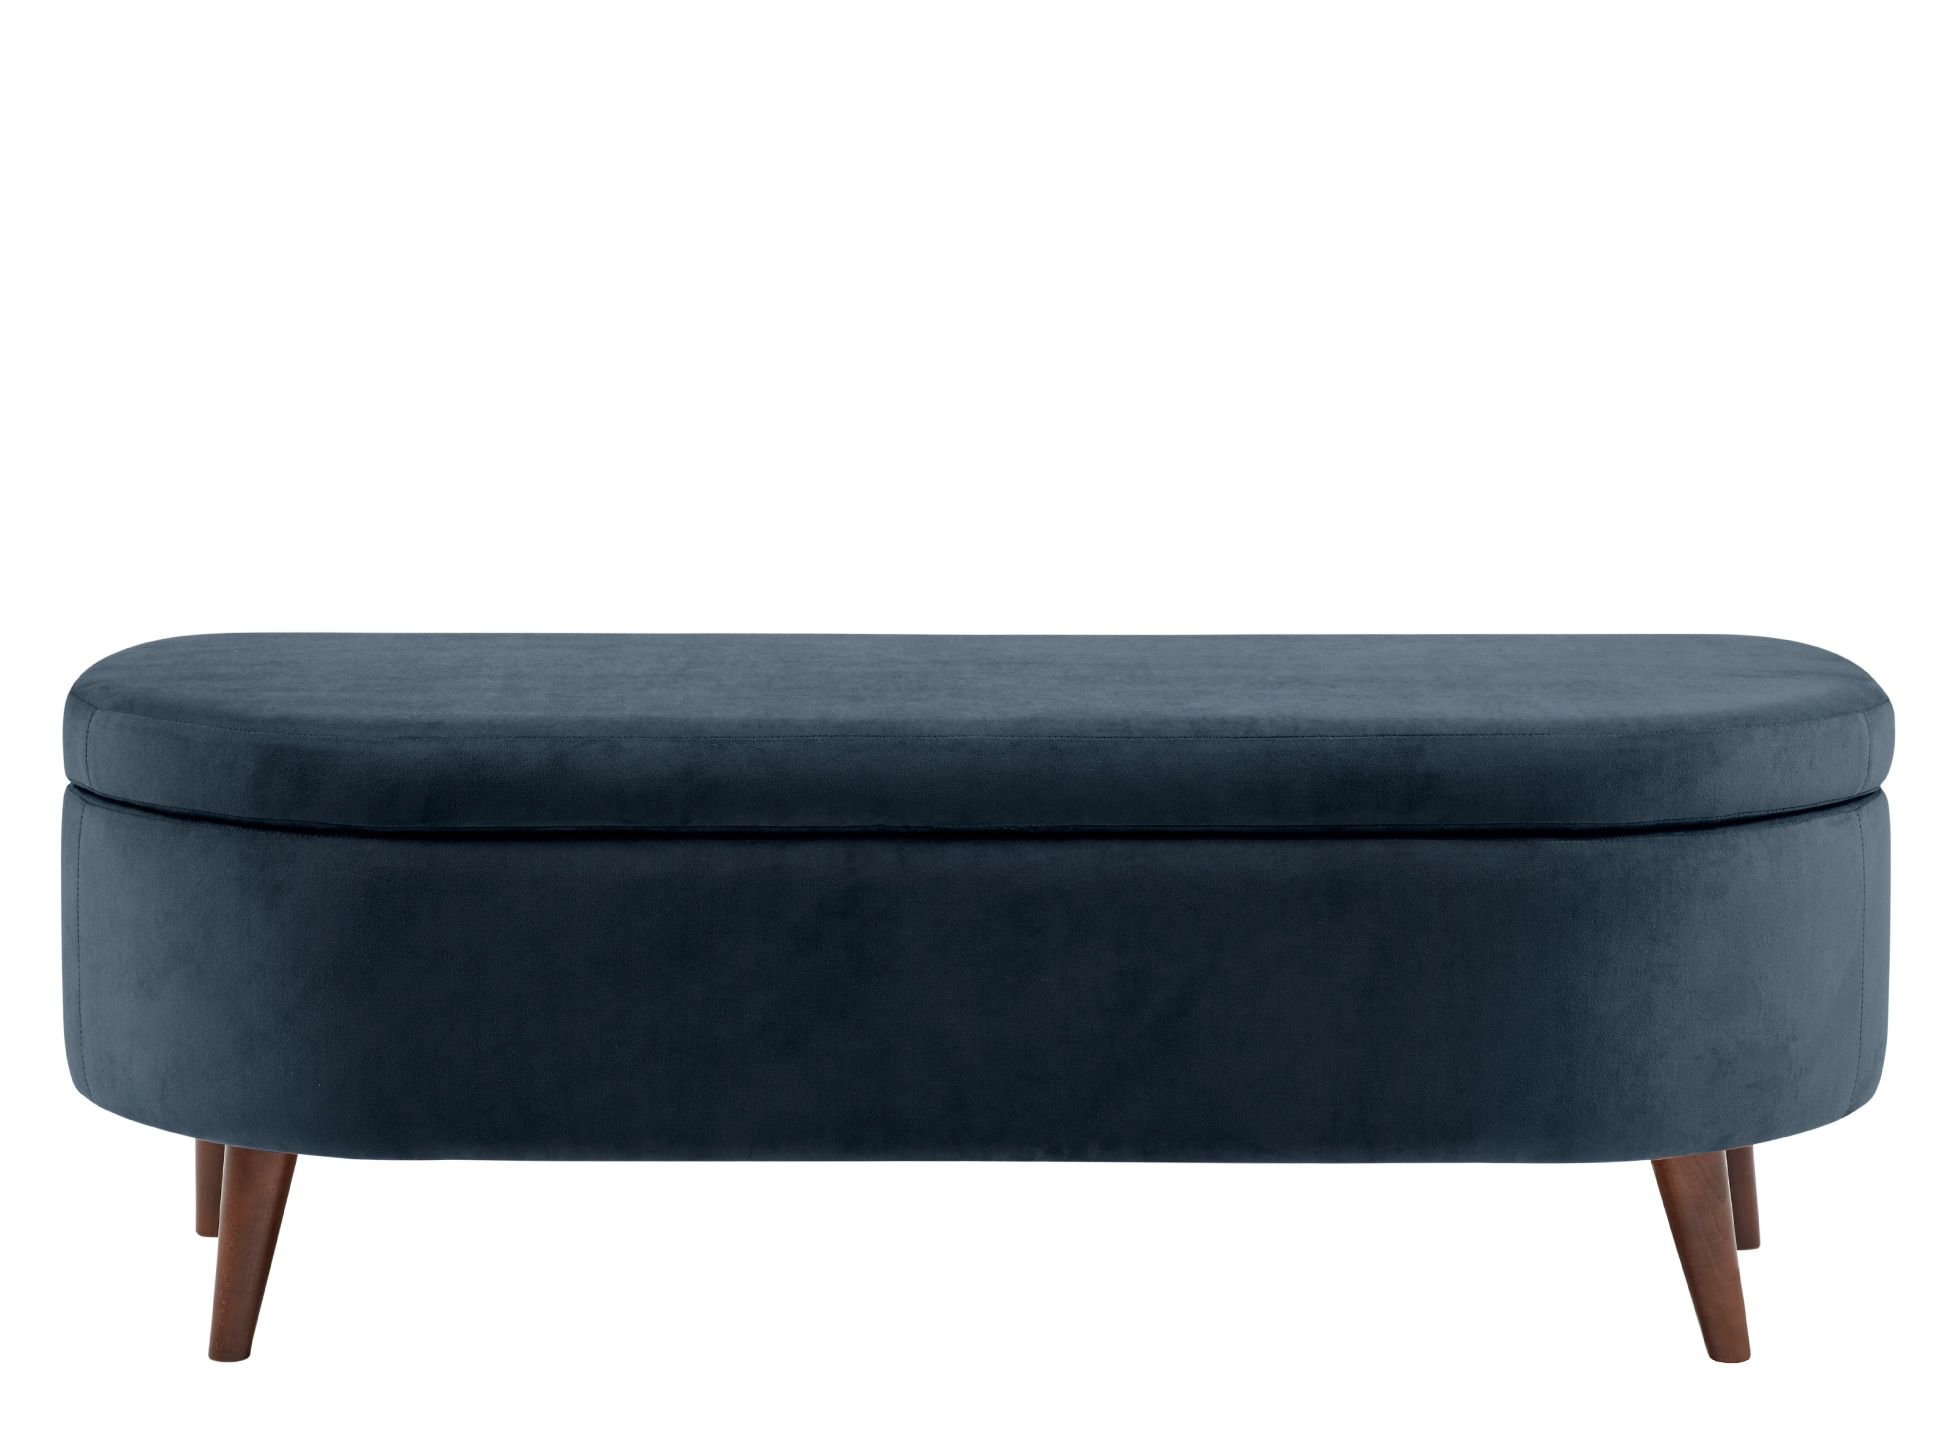 Lulu Ottoman Bench Indigo Blue Ottoman Bench Ottoman Bench With Storage